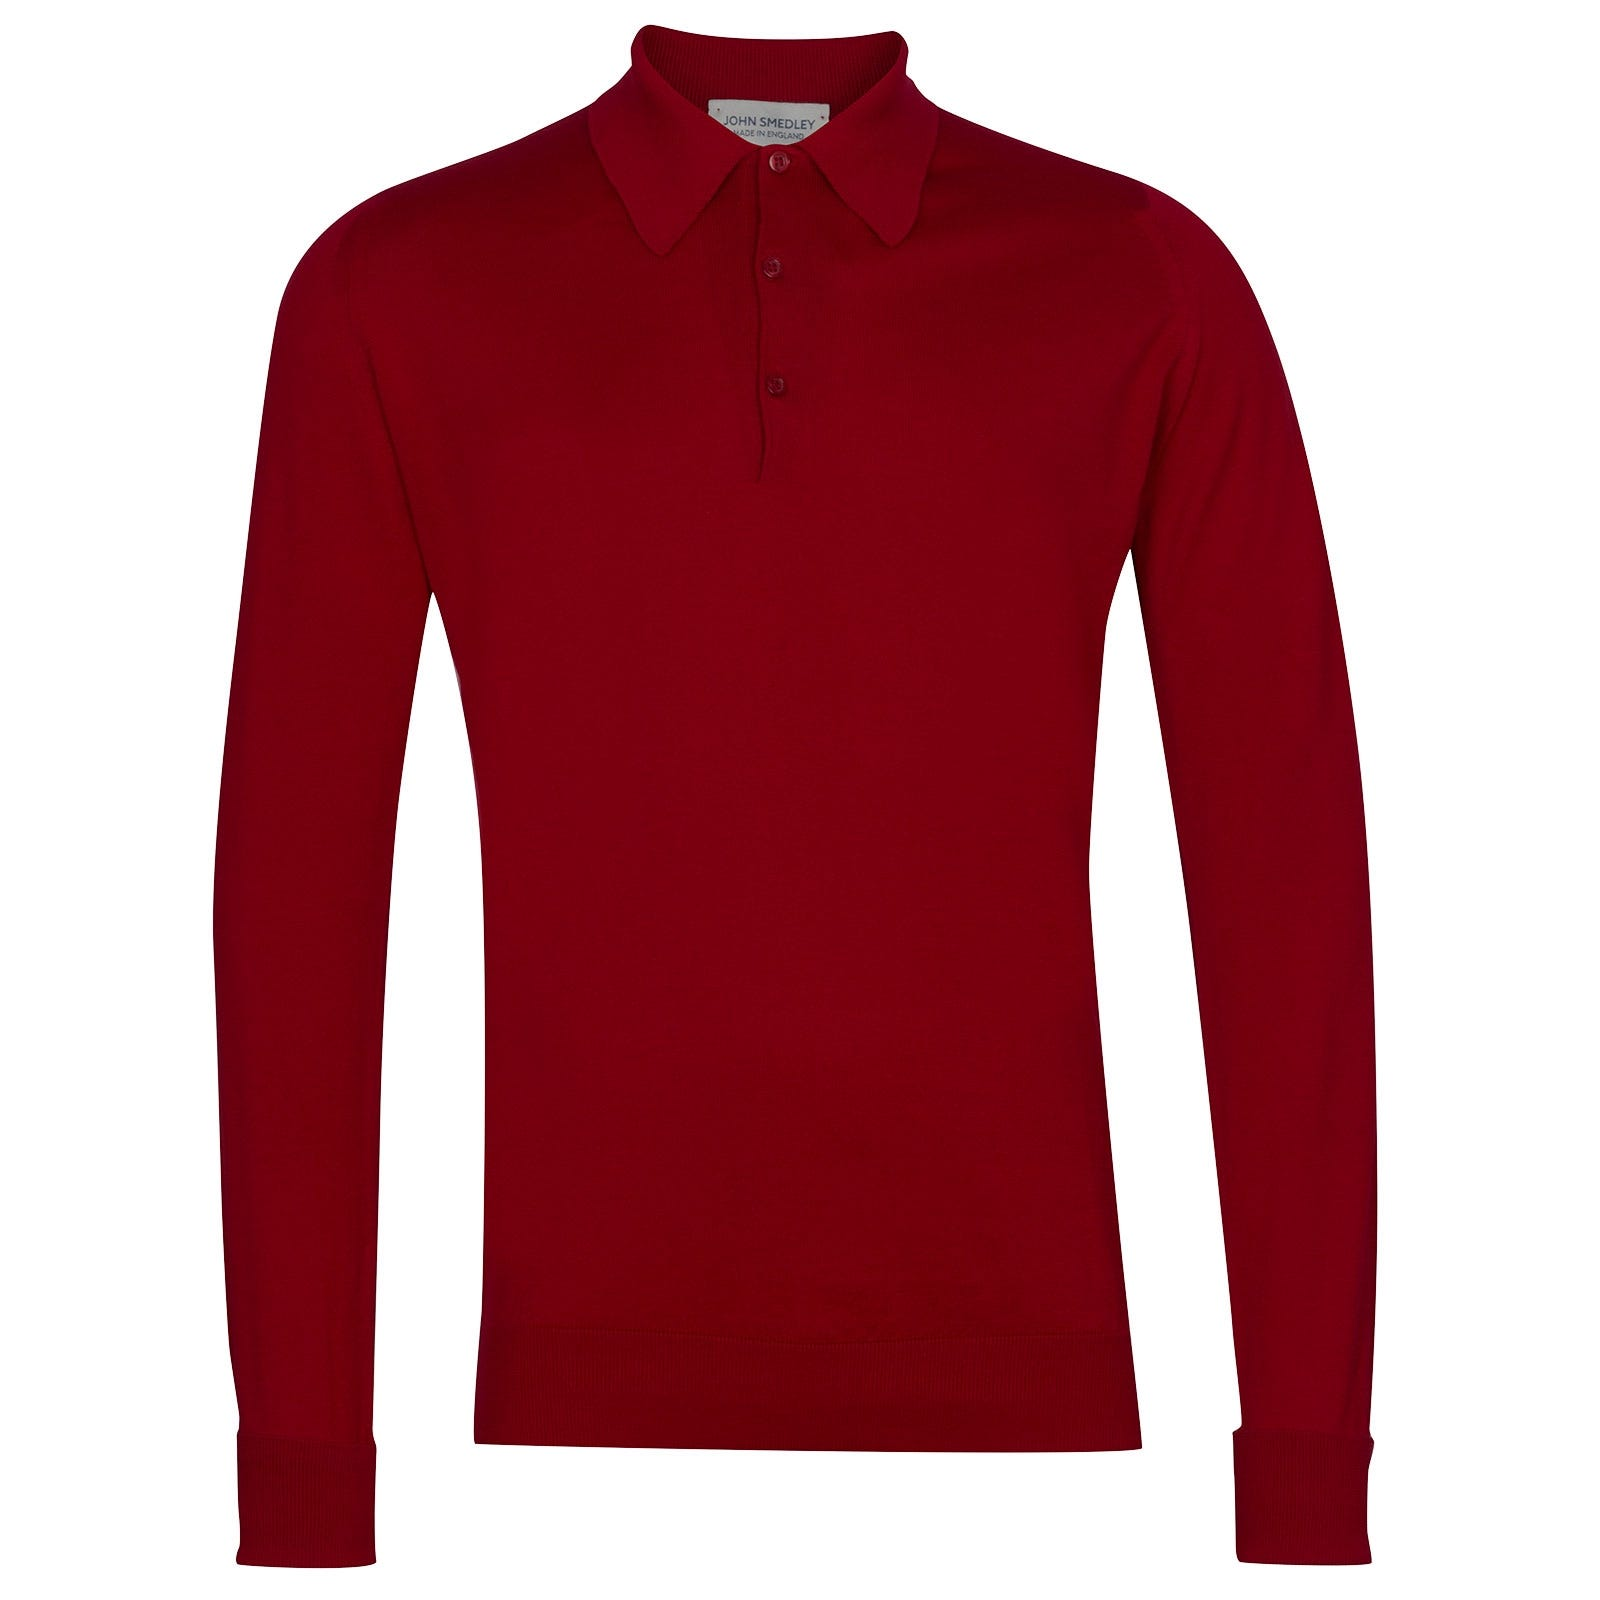 John Smedley Finchley Sea Island Cotton Shirt in Thermal Red-XXL